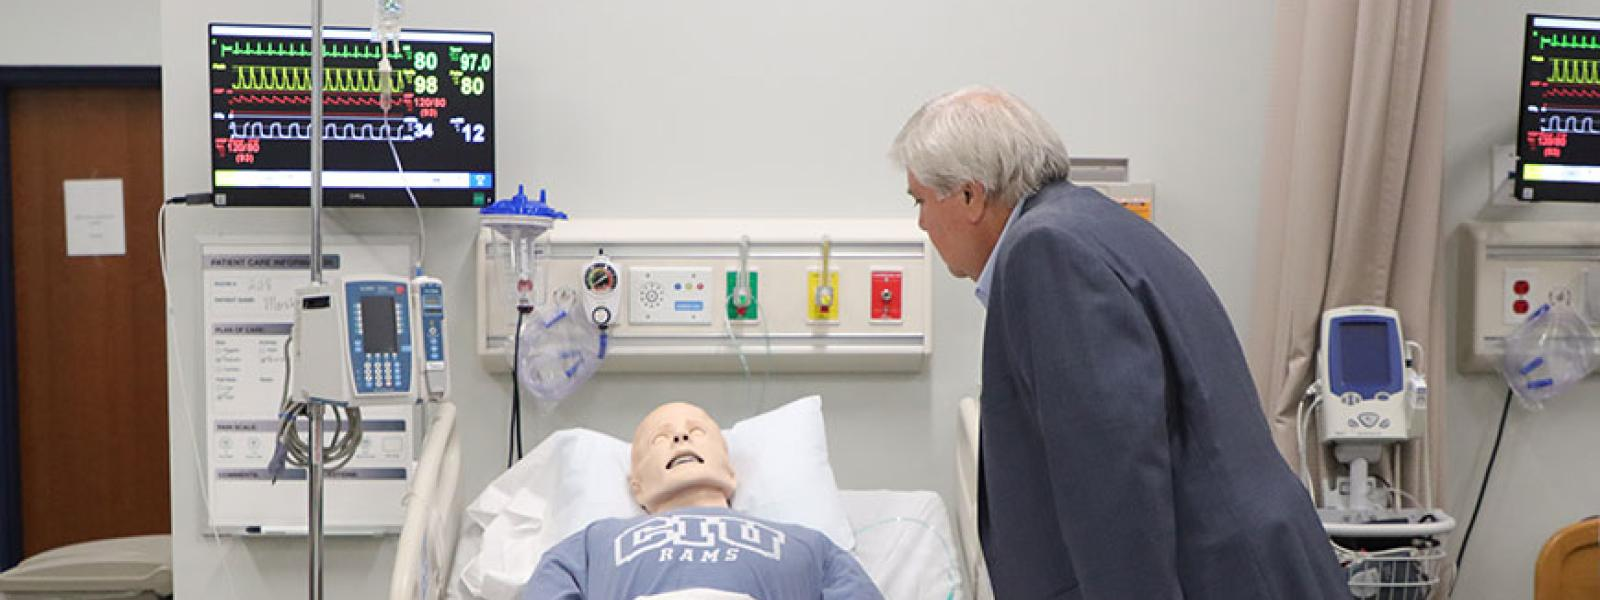 """A """"patient"""" gets a visitor in the Simulation Room. (Photos by Kierston Smith)"""